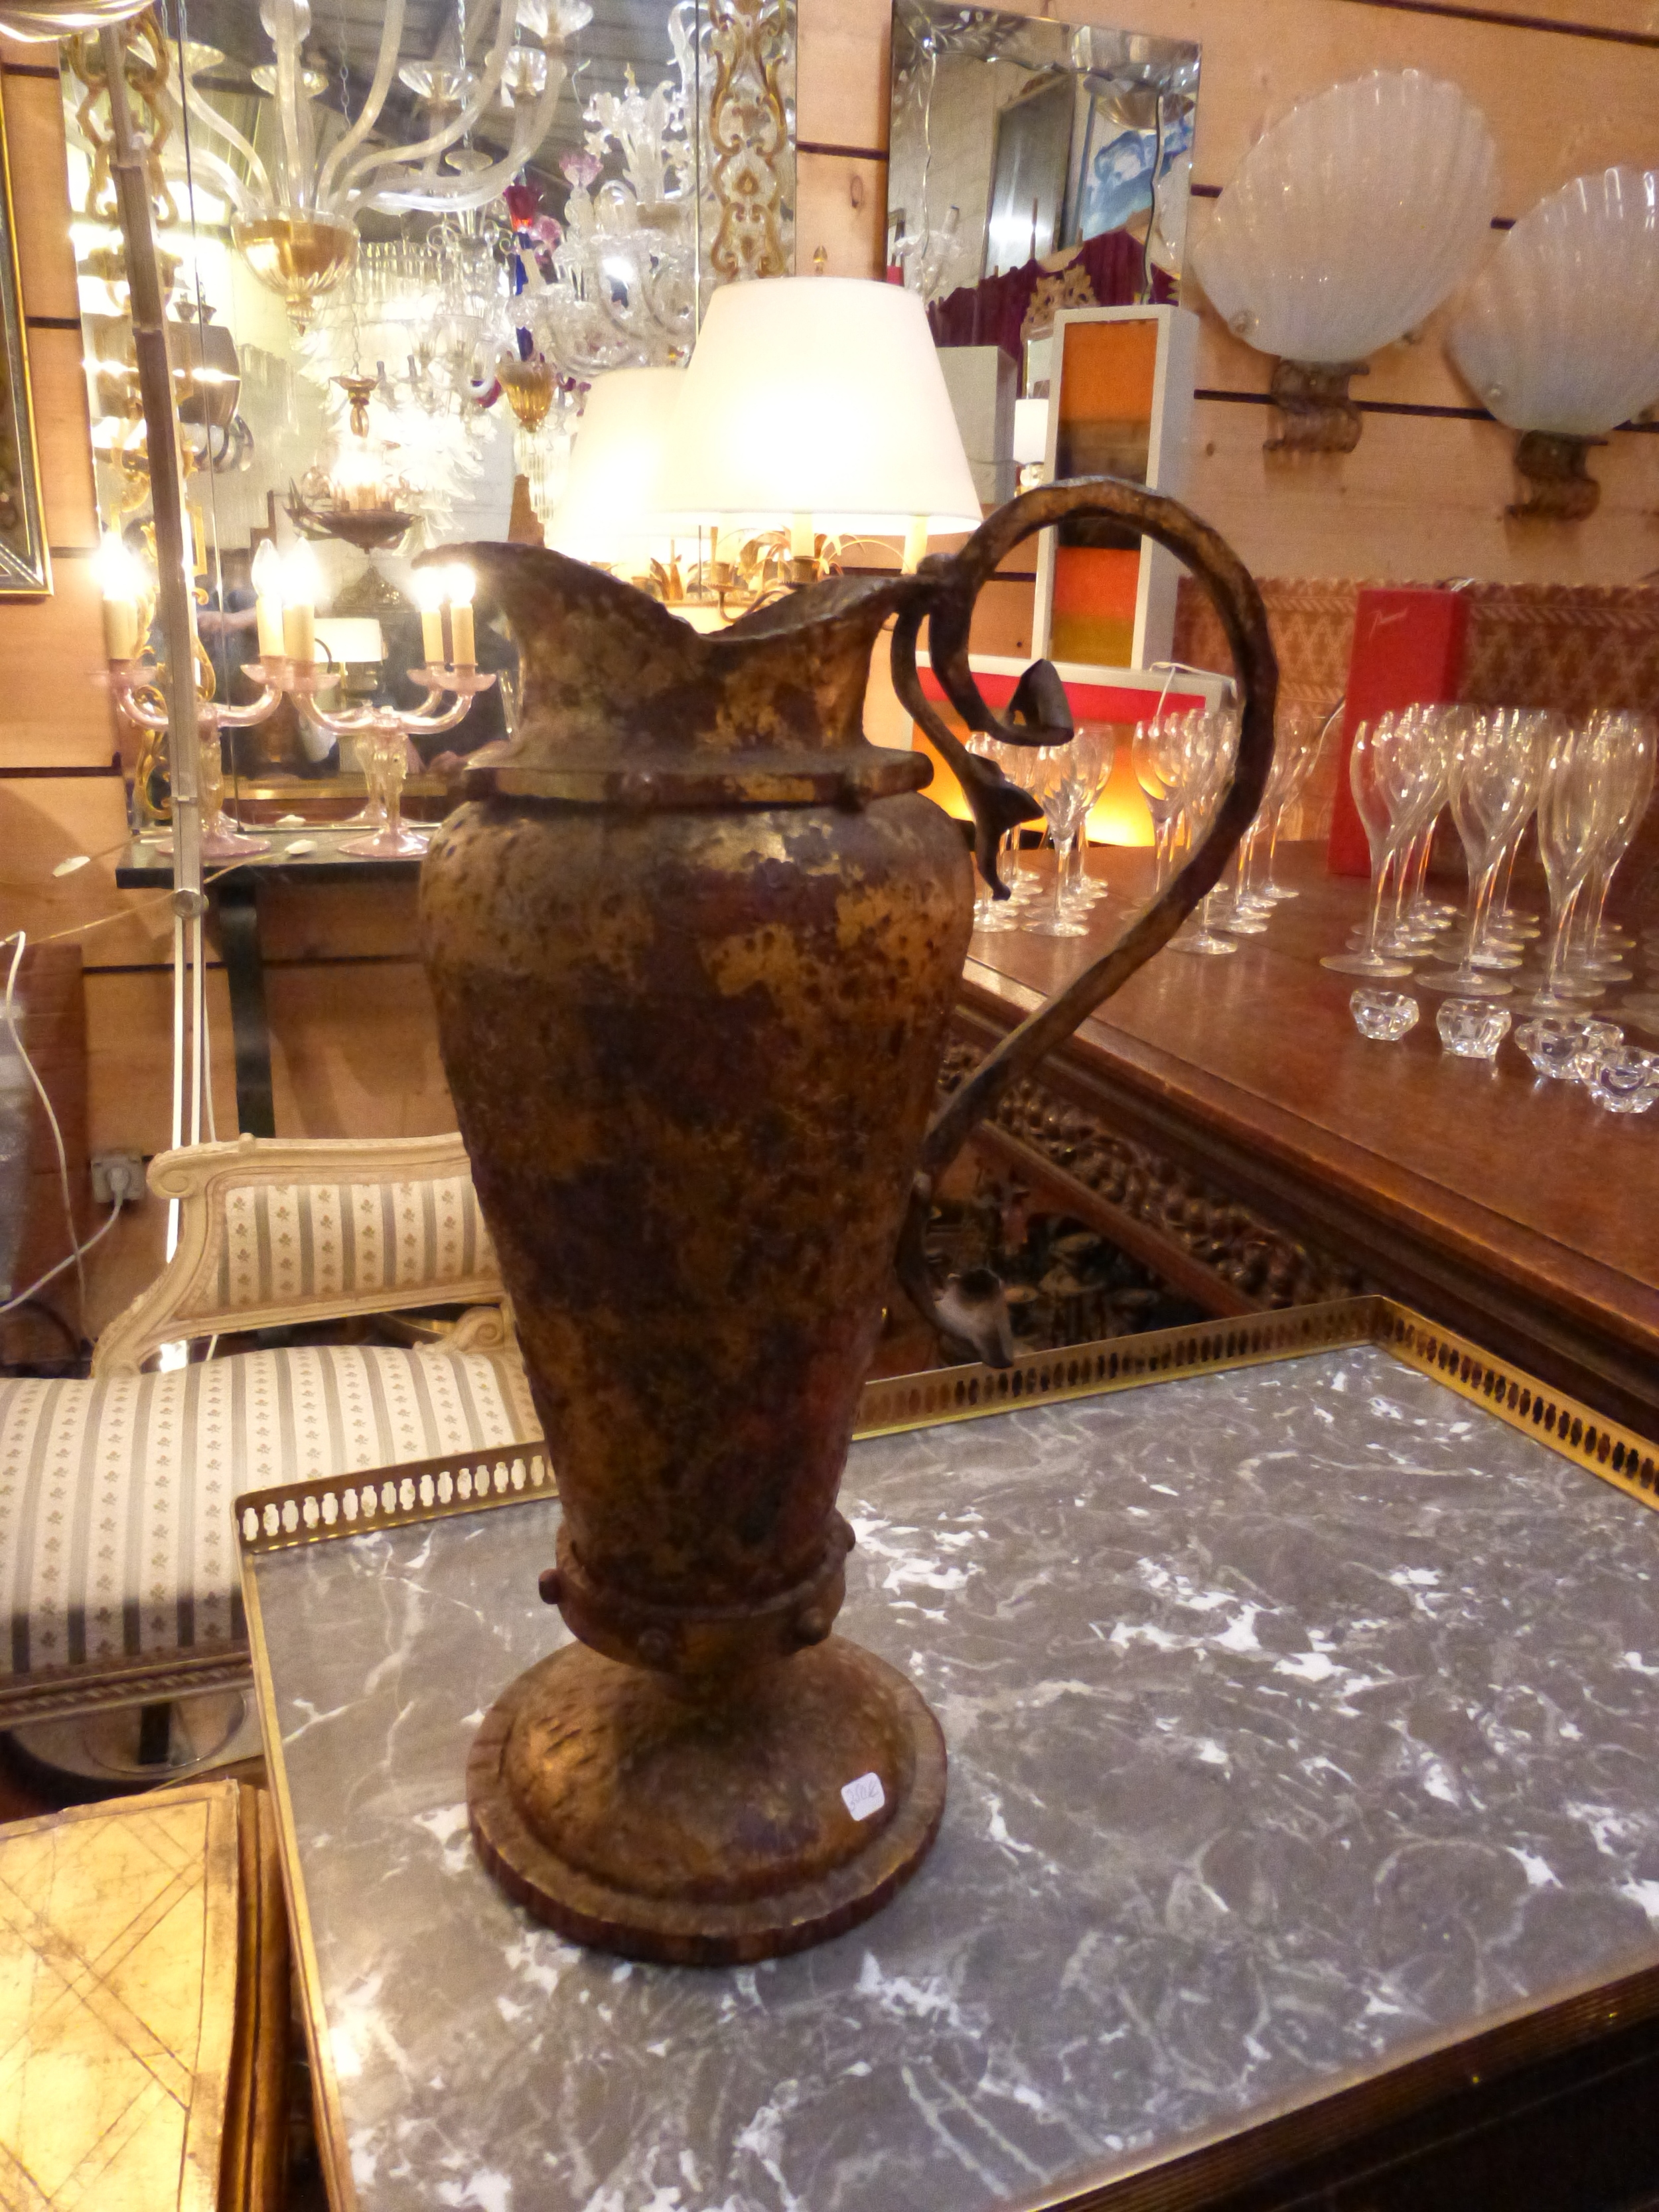 This red and gold metal ewer just stood out as as something special.